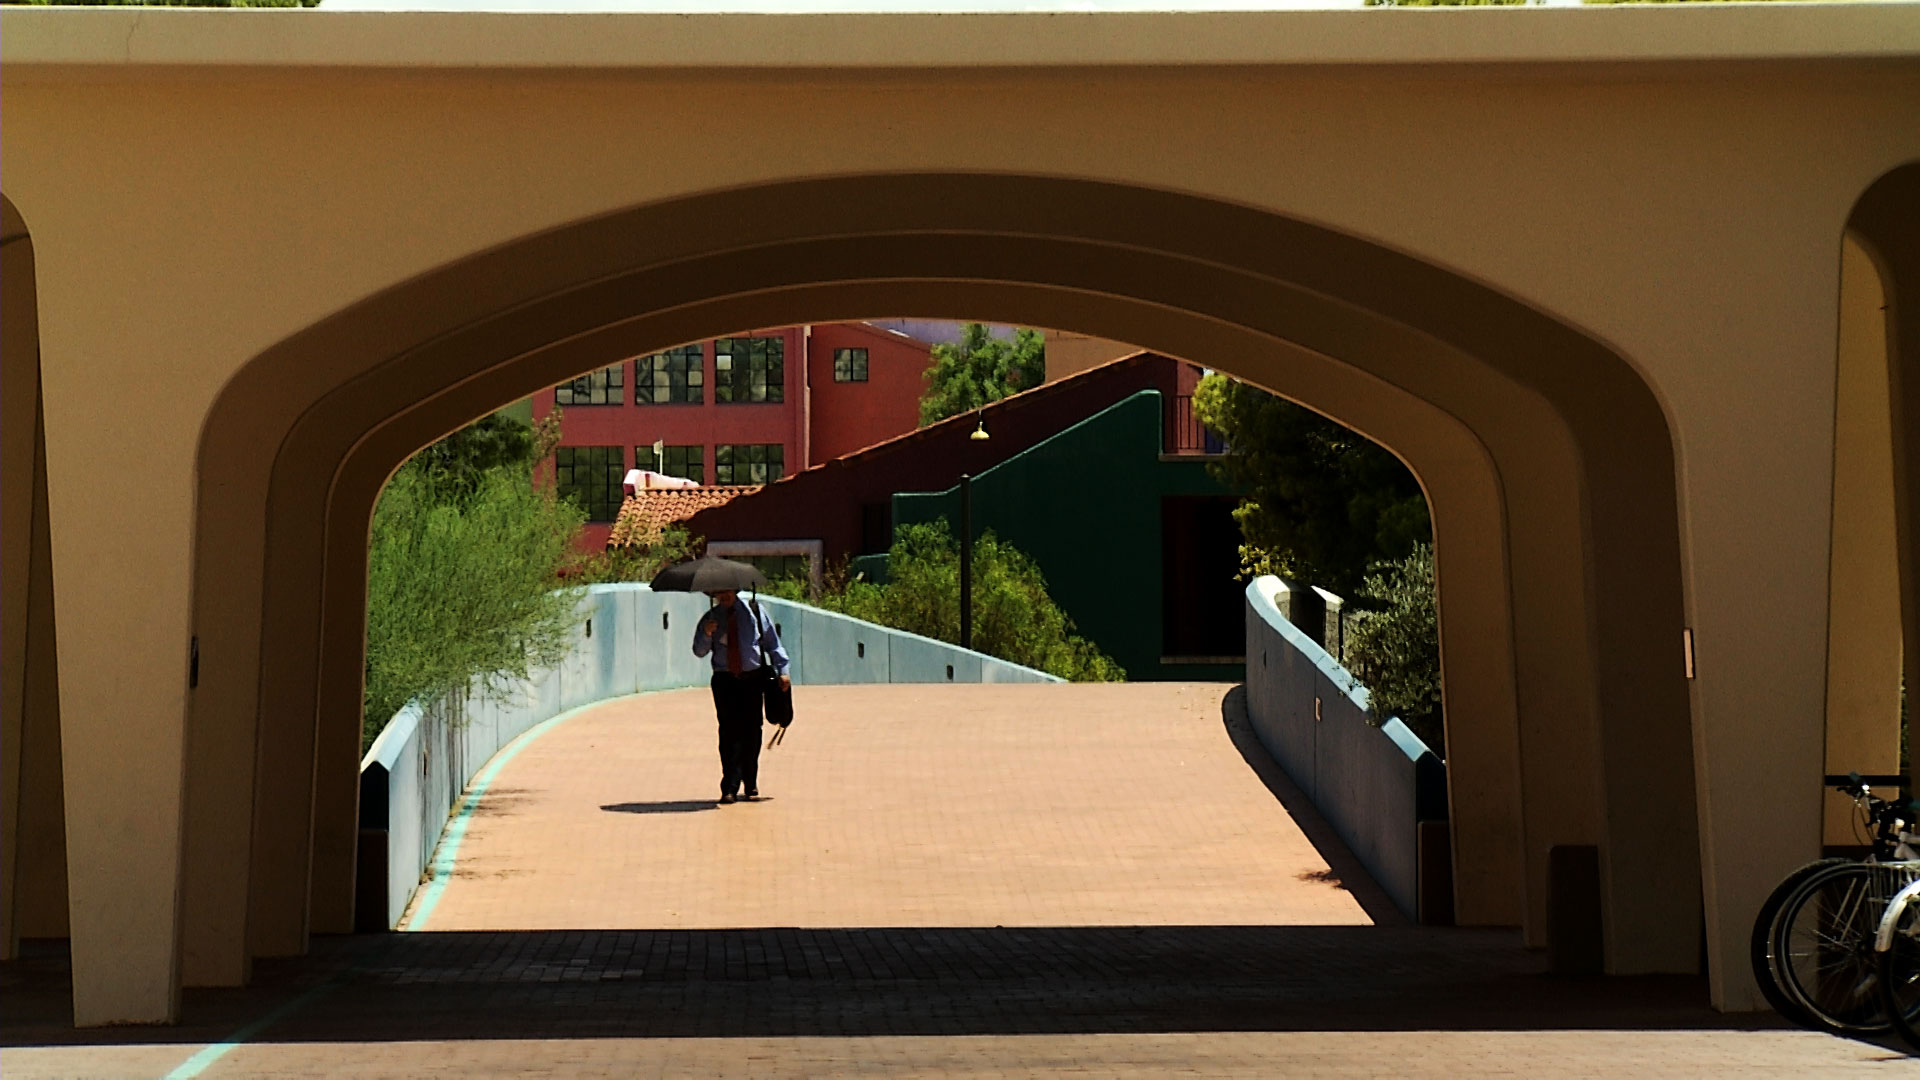 A man walking in downtown Tucson uses an umbrella to shade himself from the sun.